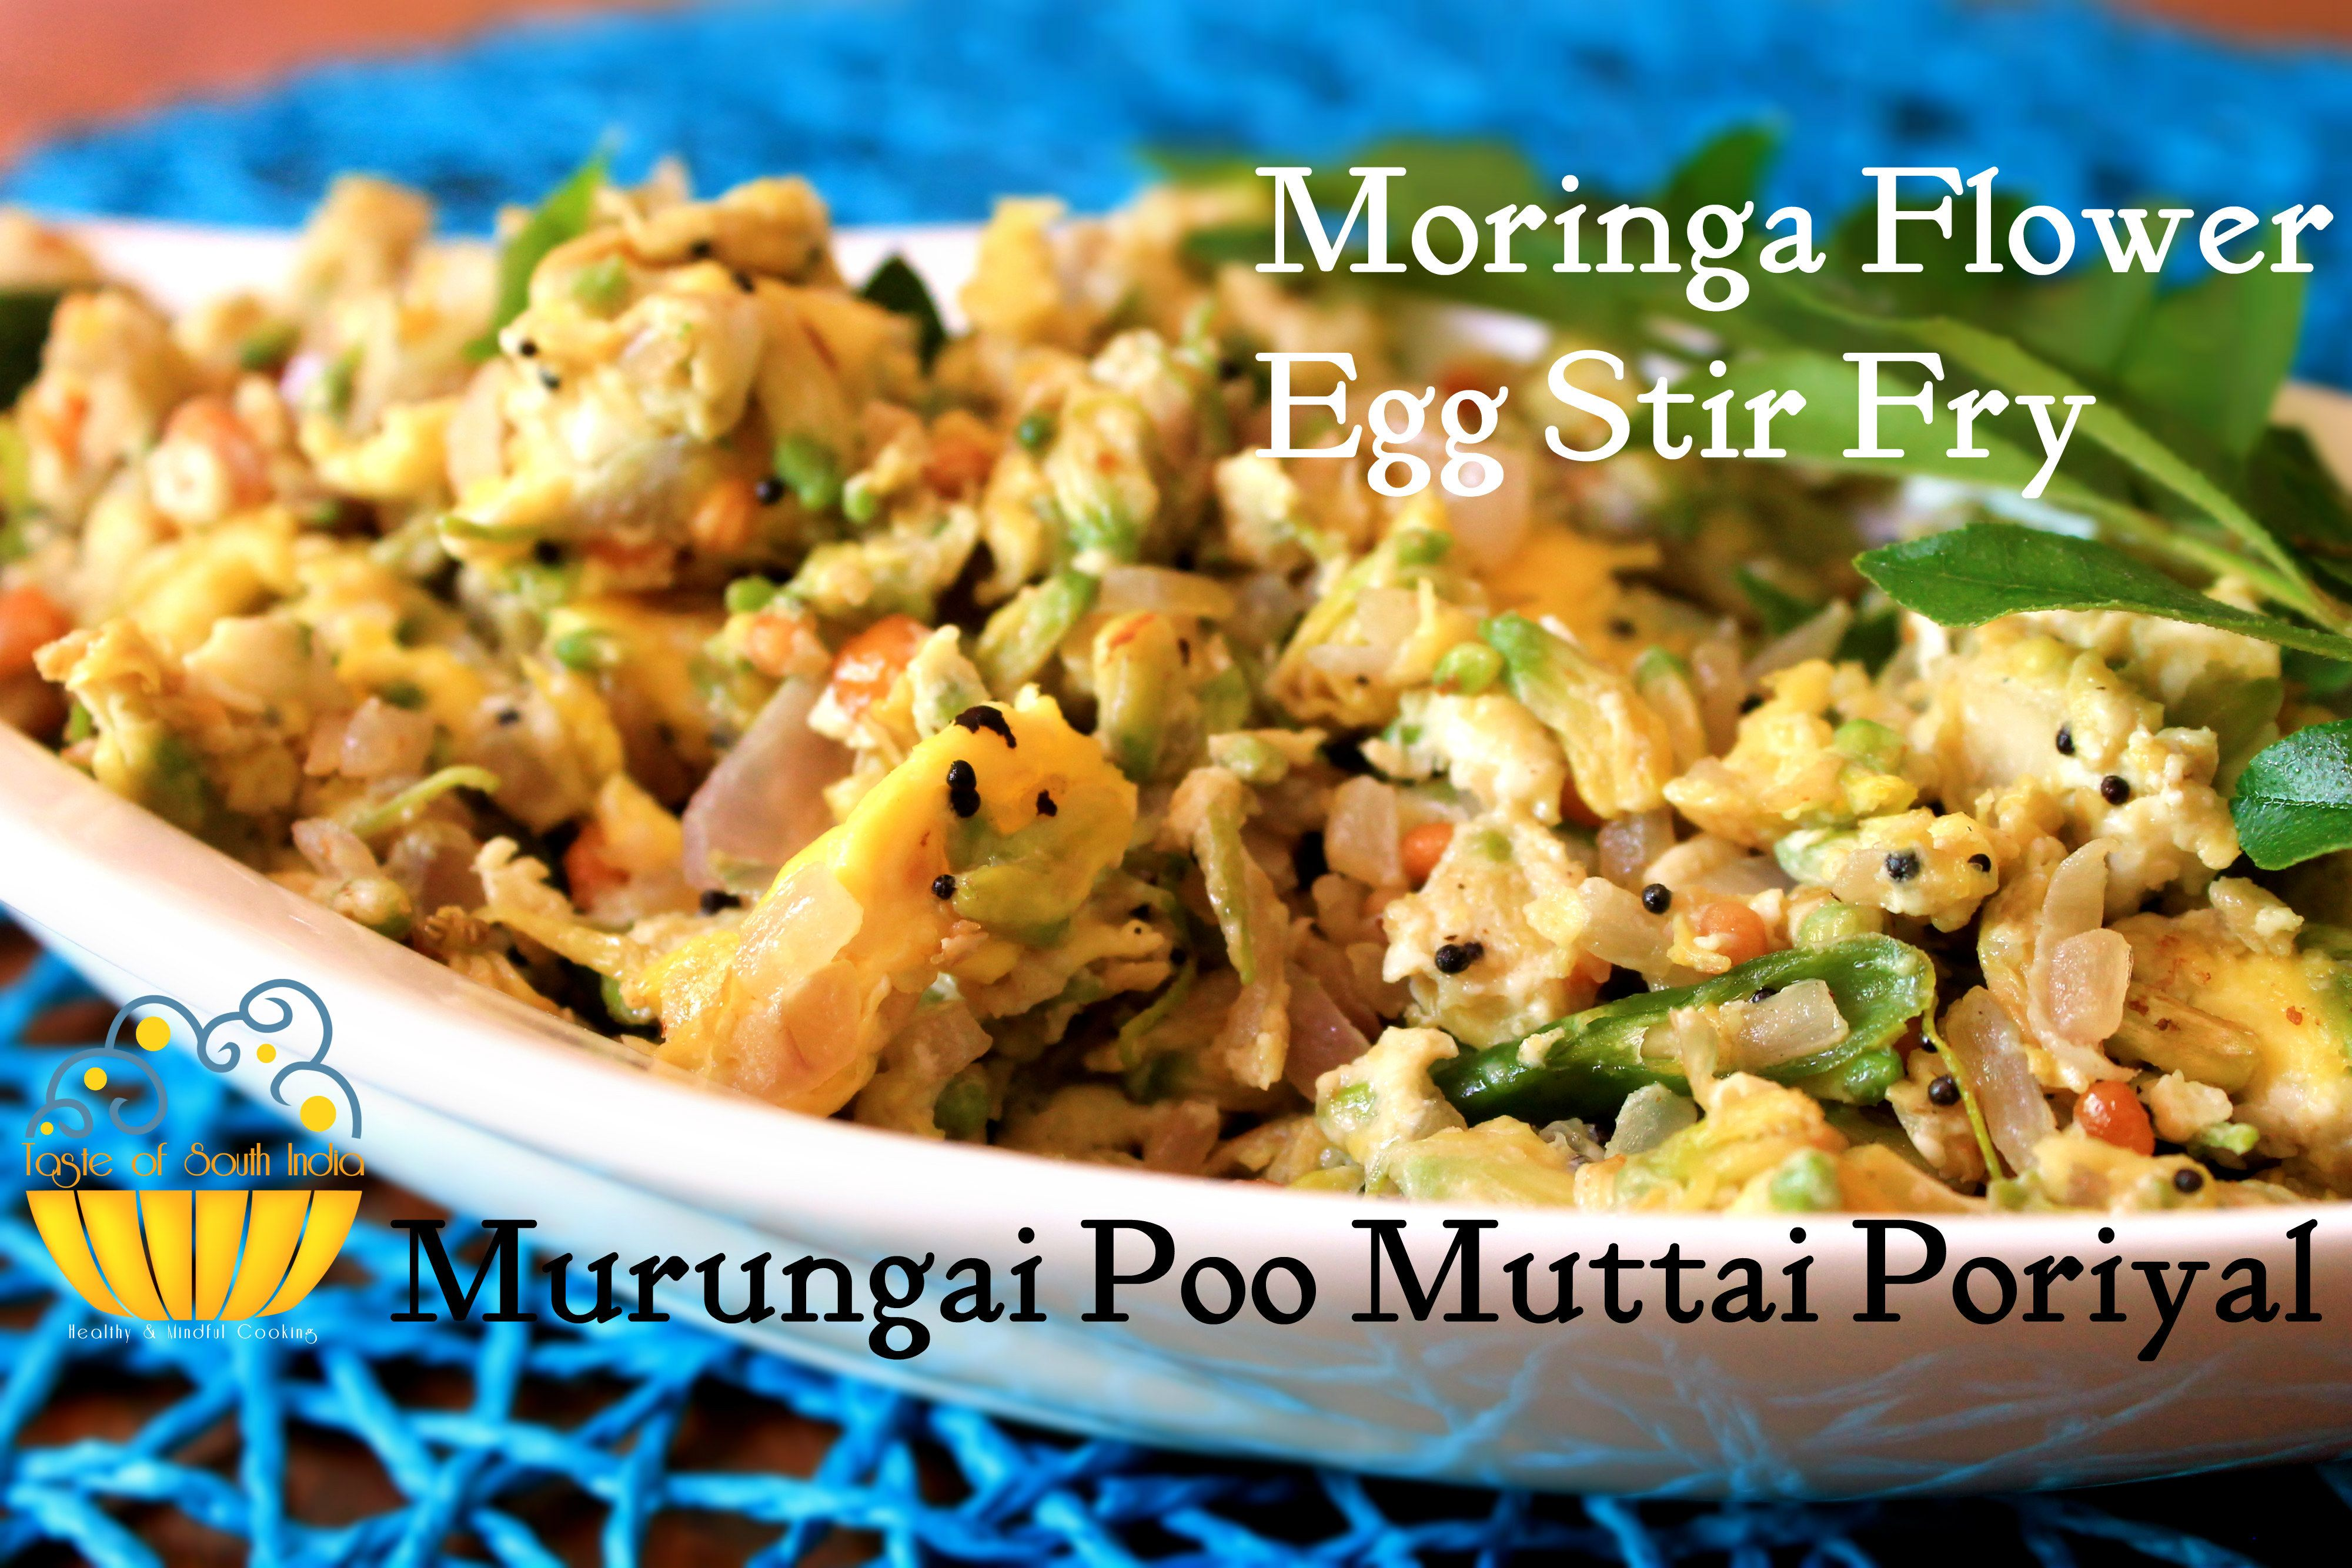 Moringa Flower Stir Fry With Egg Drumstick Flower Egg Stir Fry Murungai Poo Muttai Poriyal Indian Food Recipes Food Stir Fry With Egg